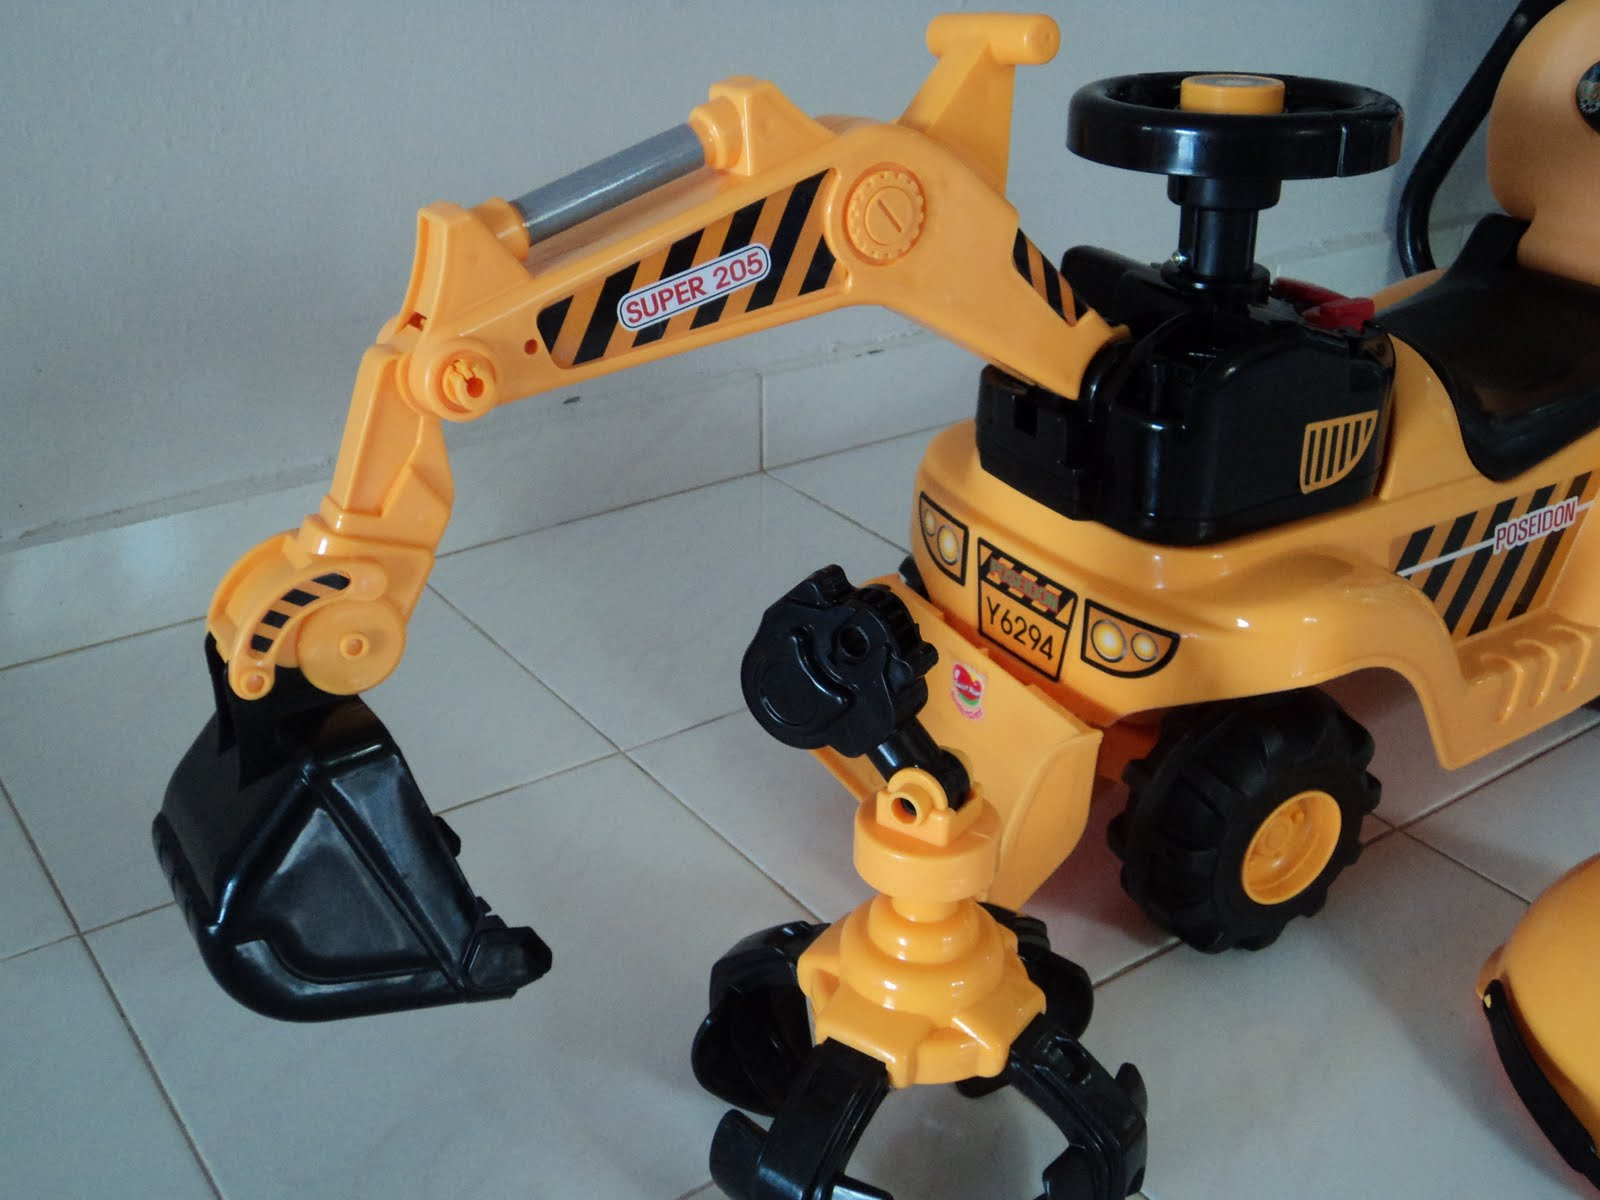 the right bike store imported new kids toy car excavator design